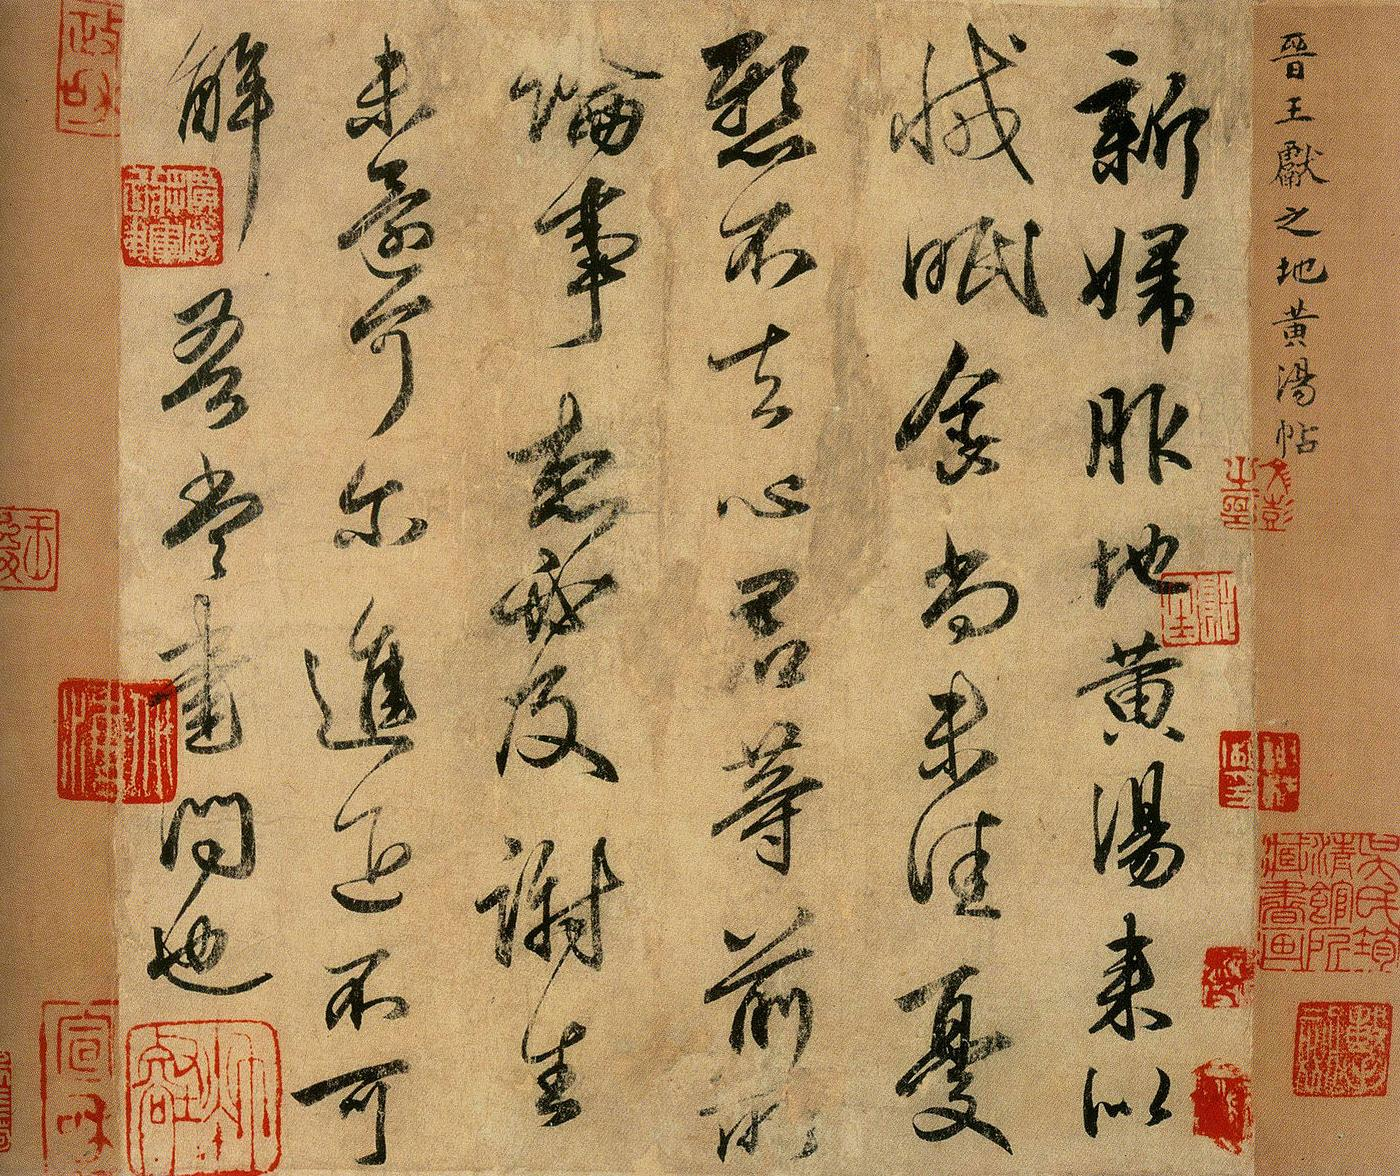 Tang Dynasty copy of 新婦地黃湯帖 by Wang Xianzhi, currently in the Taito Ward Calligraphy Museum.